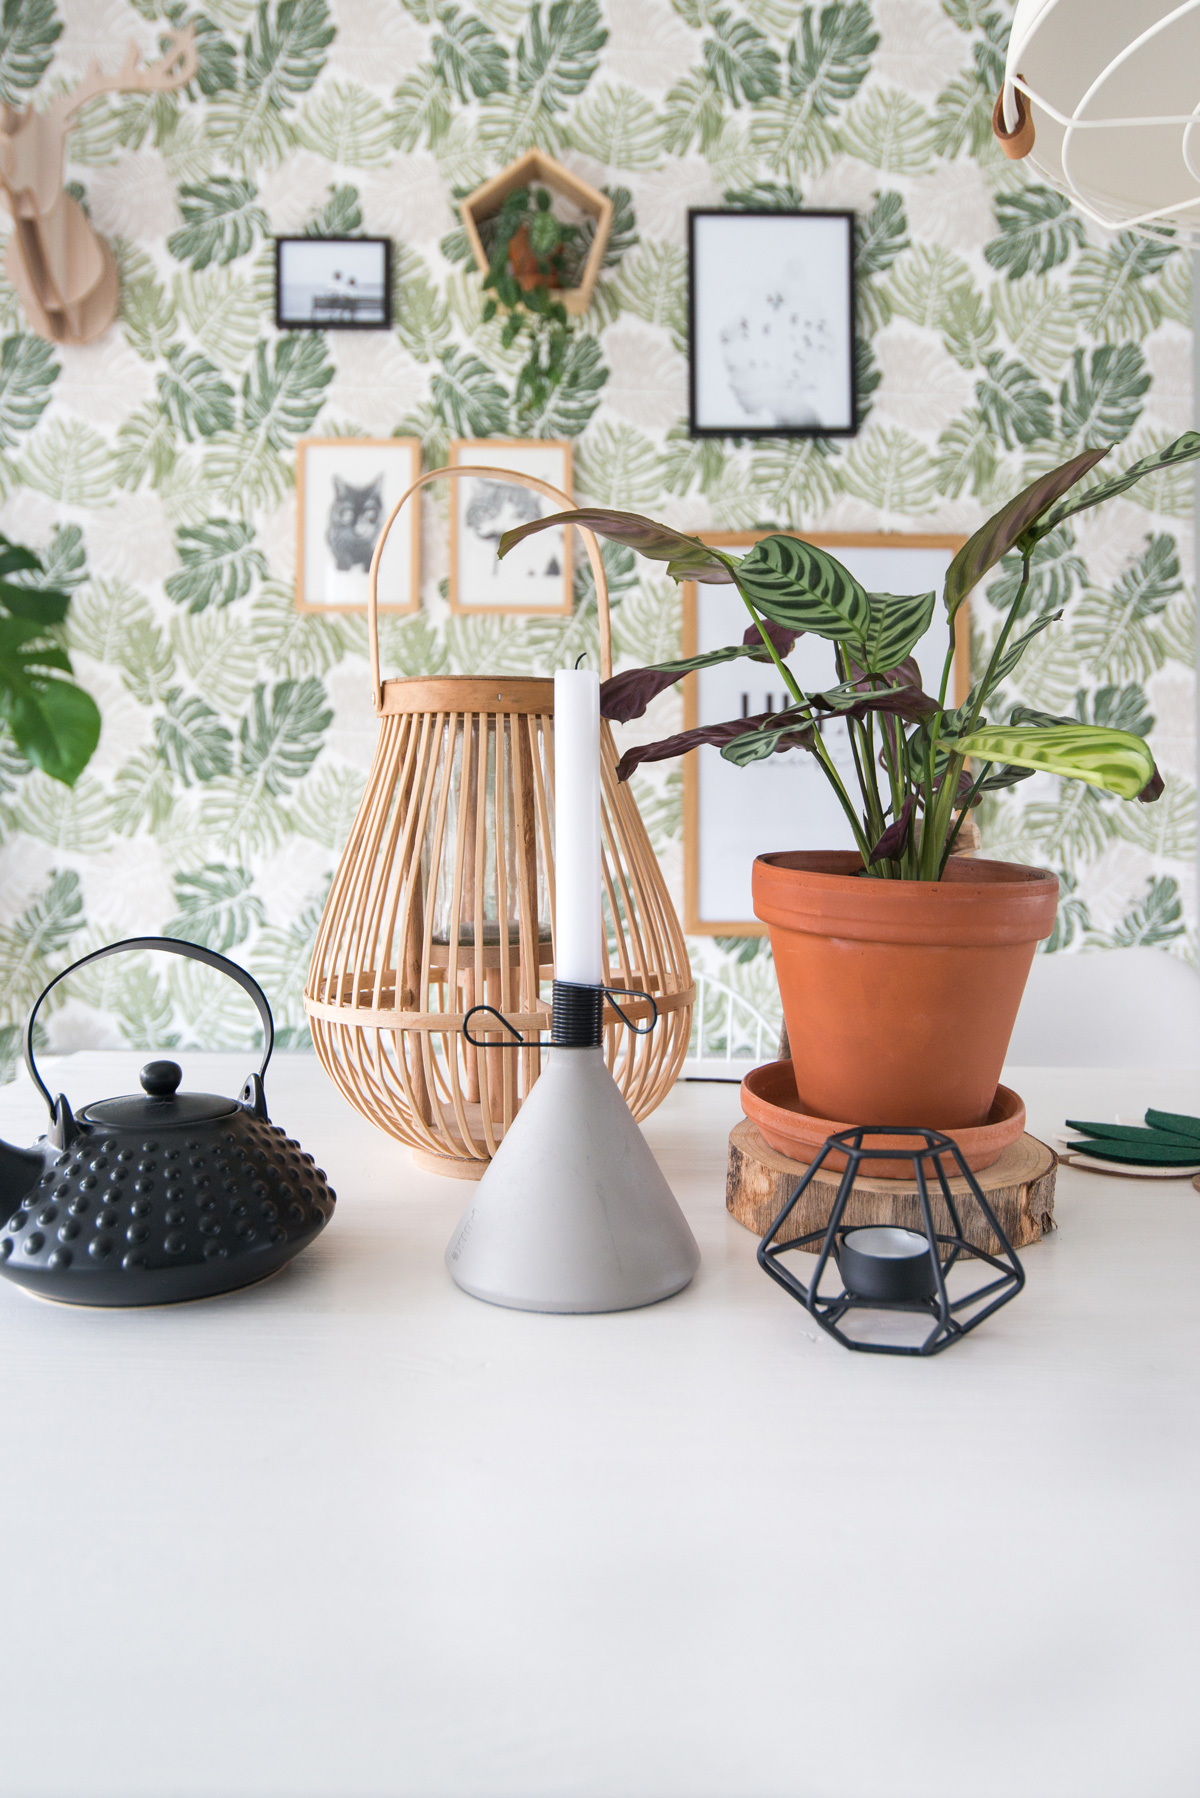 puikdesign conic kaarsenhouder candleholder betonlook concrete botanical wallpaper plants interior green